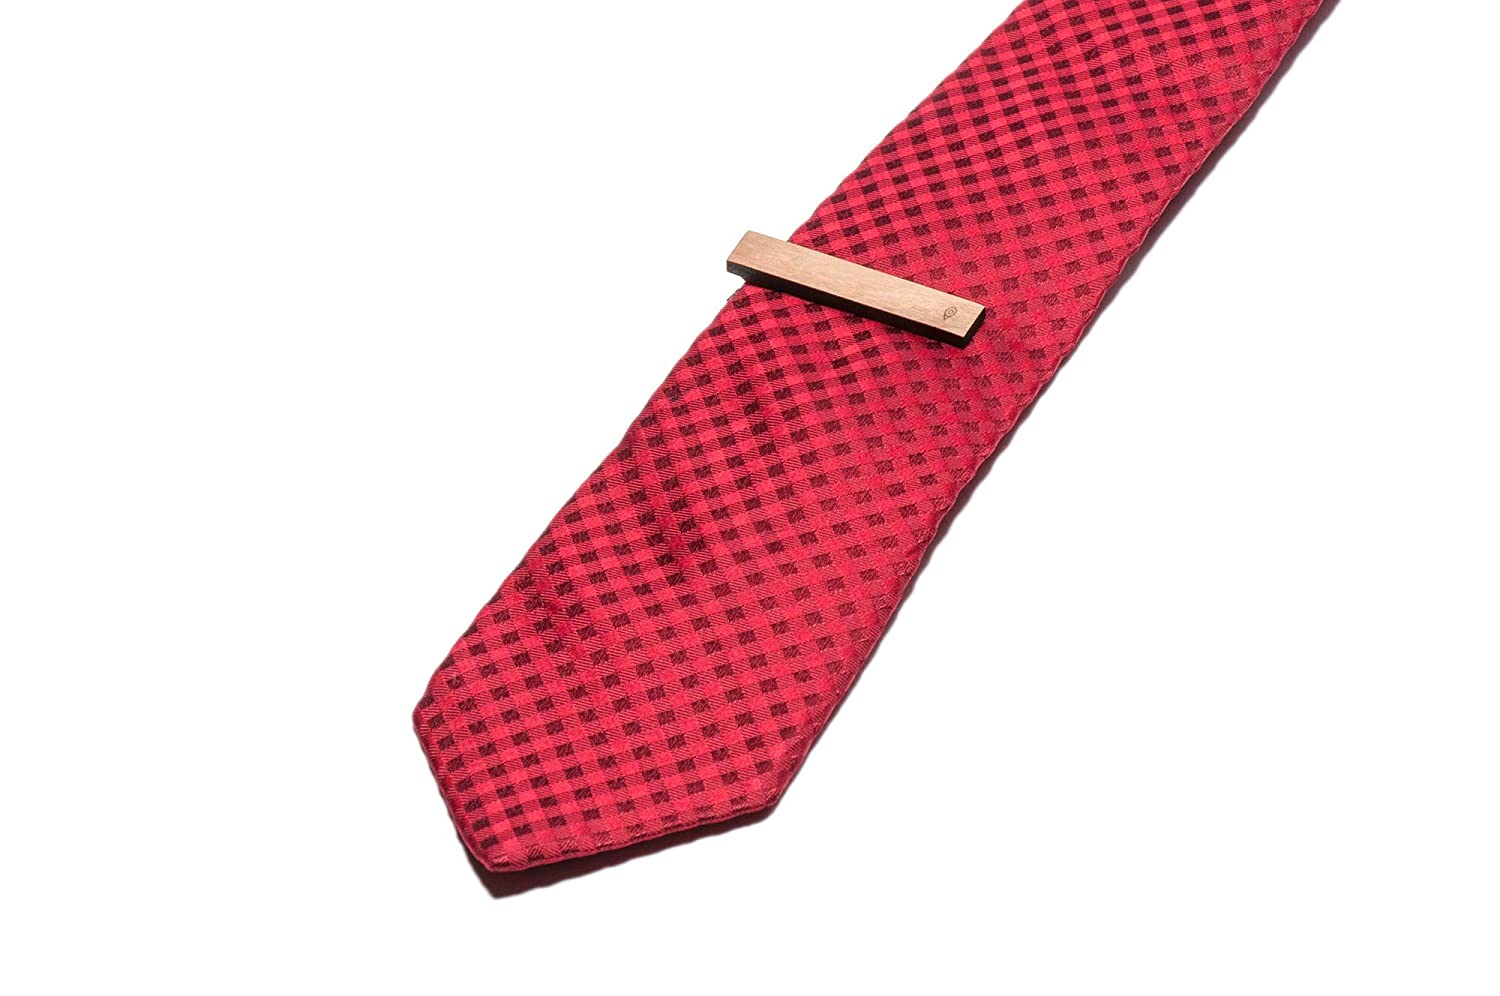 Cherry Wood Tie Bar Engraved in The USA Wooden Accessories Company Wooden Tie Clips with Laser Engraved Geotag Design